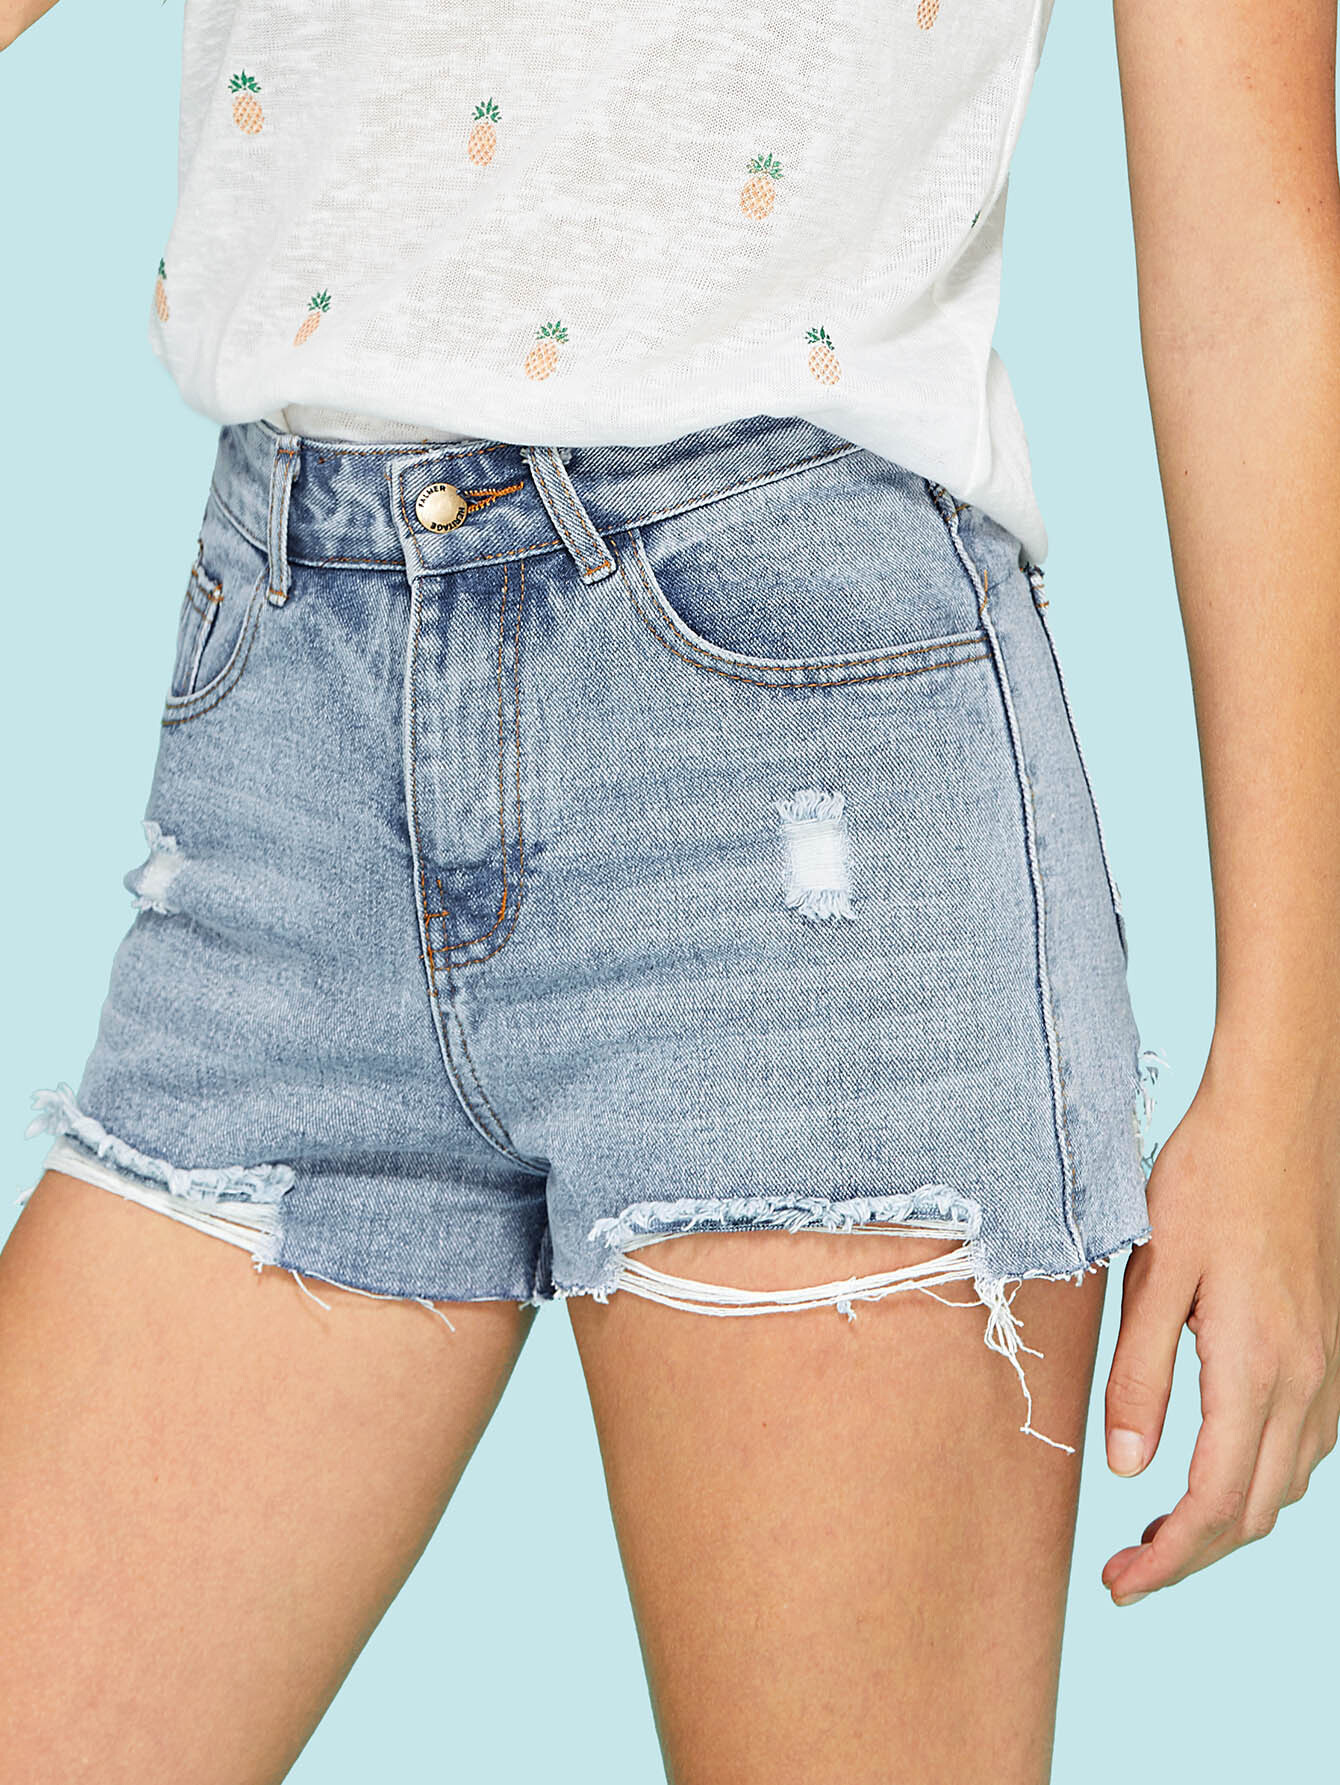 Hole Denim Shorts zengli mens denim cargo shorts jeans casual vintage blue pockets biker jeans summer knee length denim shorts 40 42 44 46 48